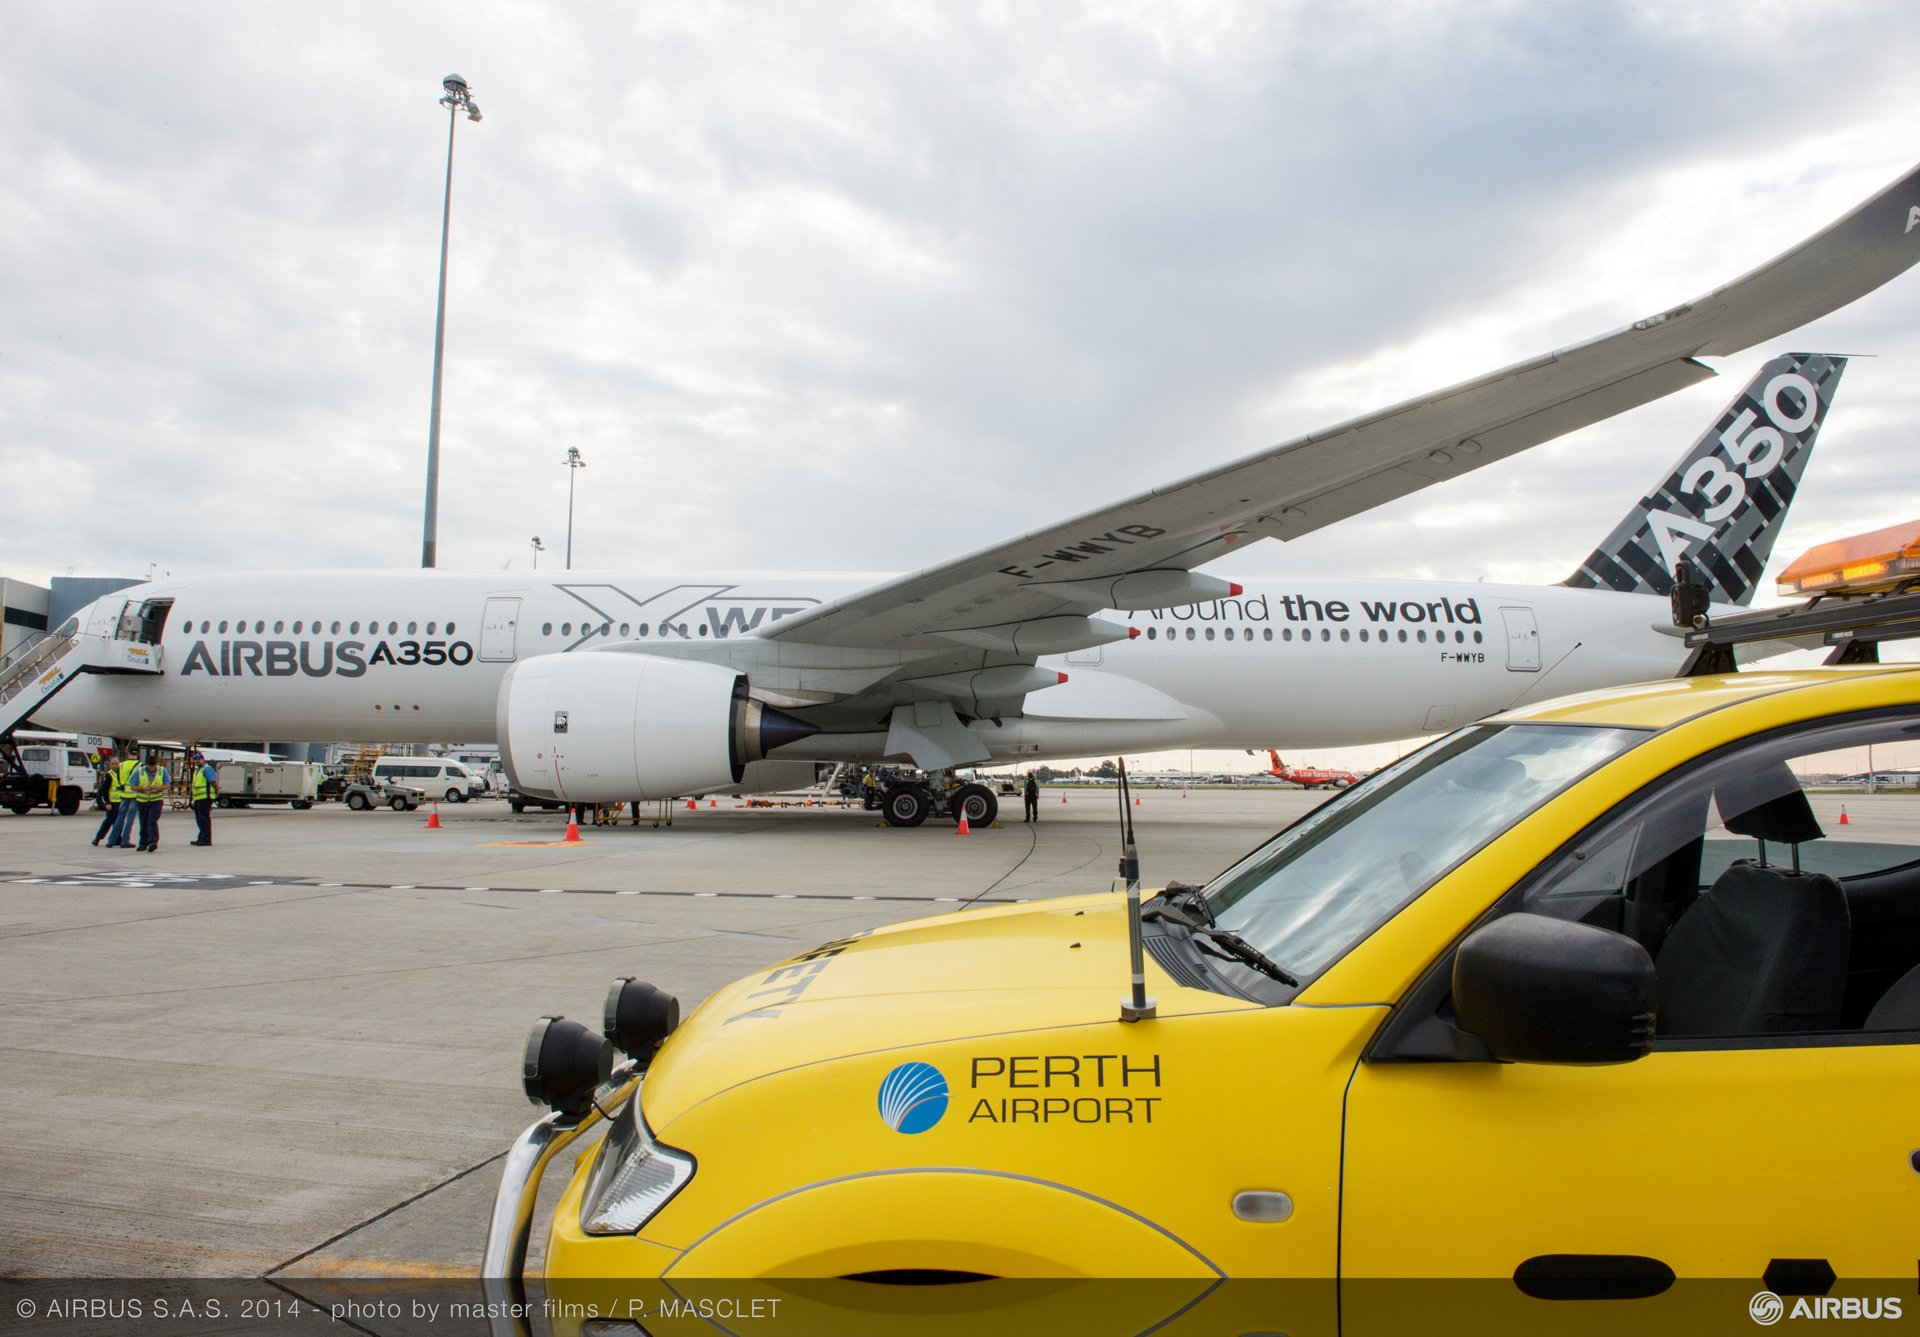 A350 XWB AT  PERTH AIRPORT - ROUTE PROVING TRIP 4, A350 XWB route proving Perth airport